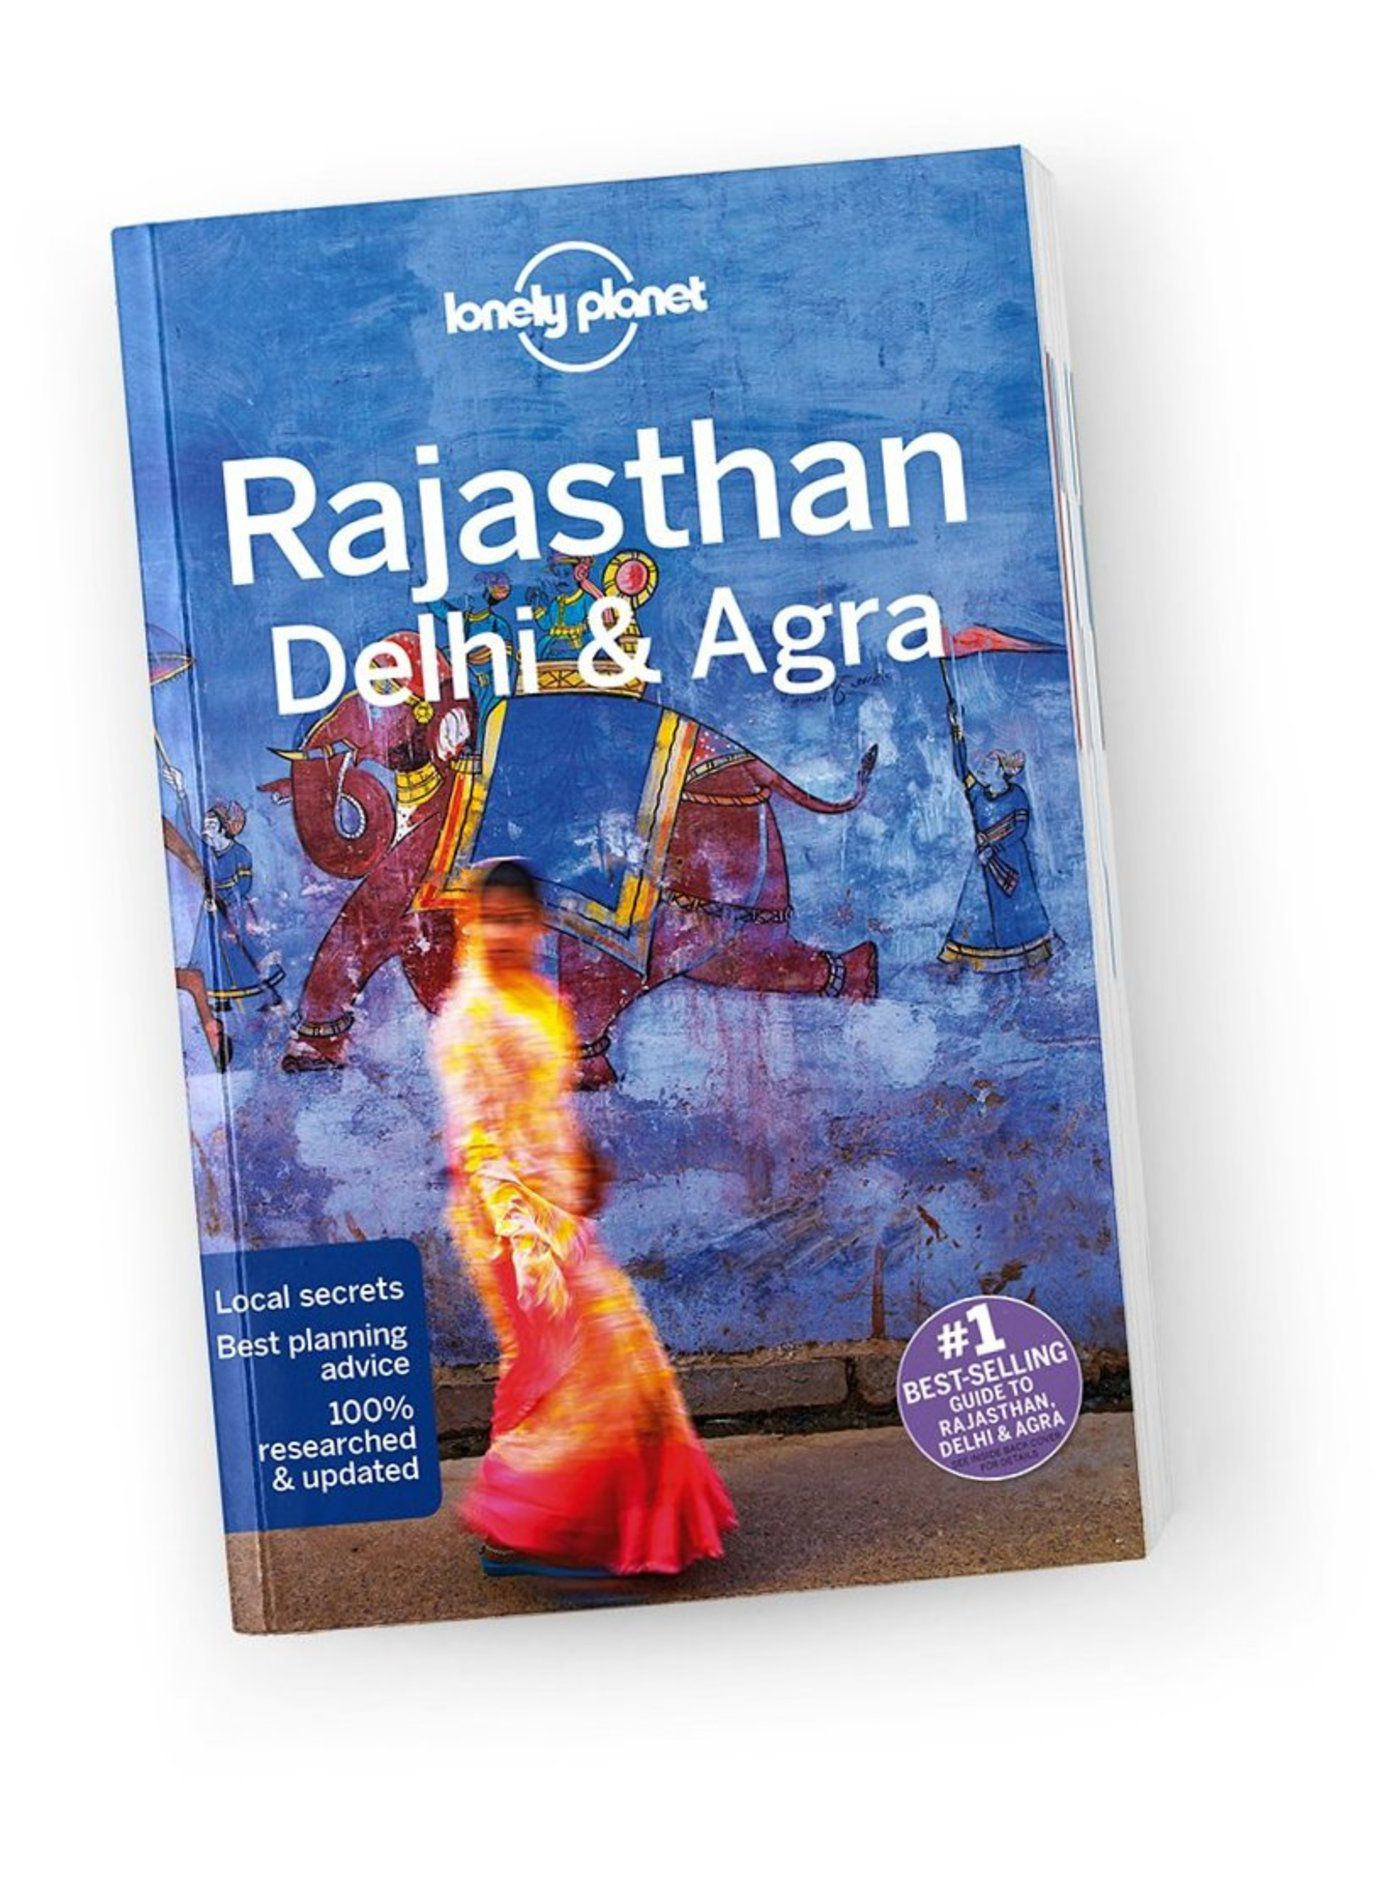 Rajasthan, Delhi & Agra travel guide